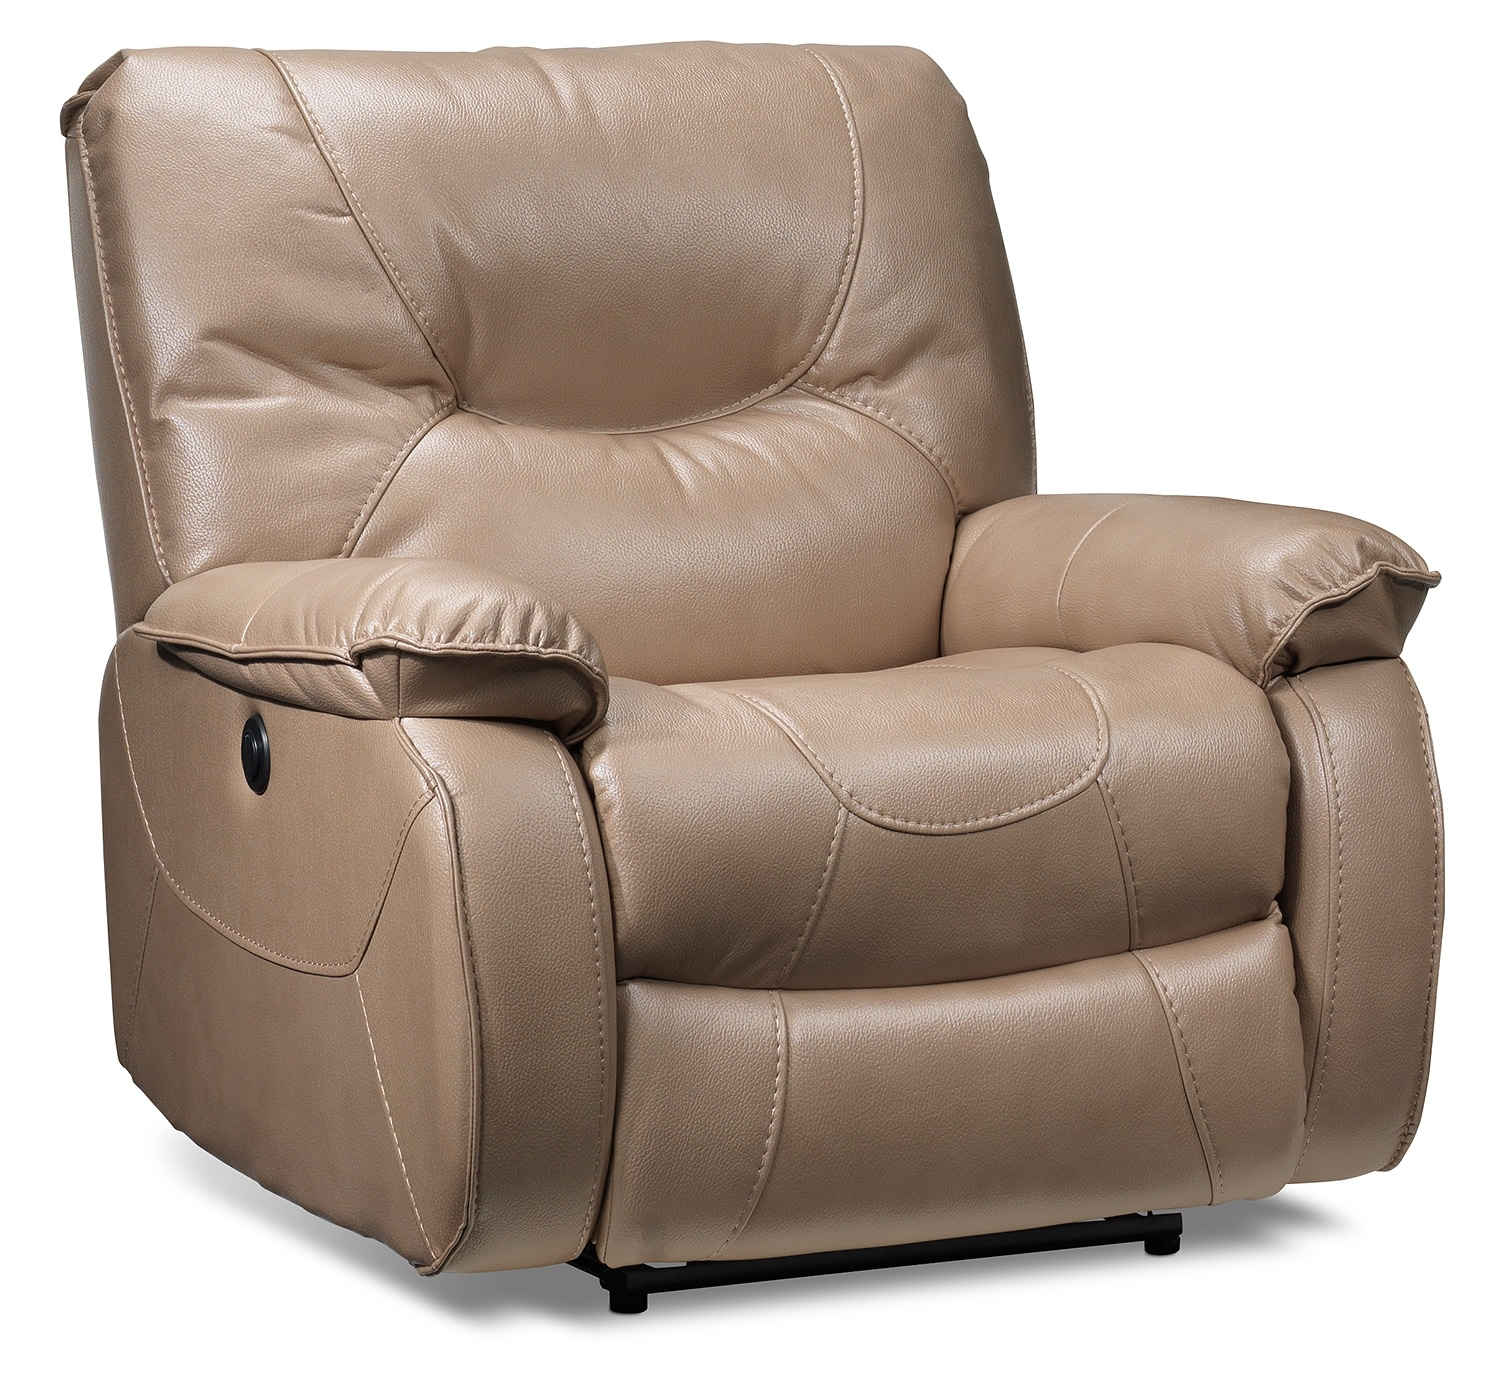 Living Room Furniture - Canton Power Recliner - Taupe